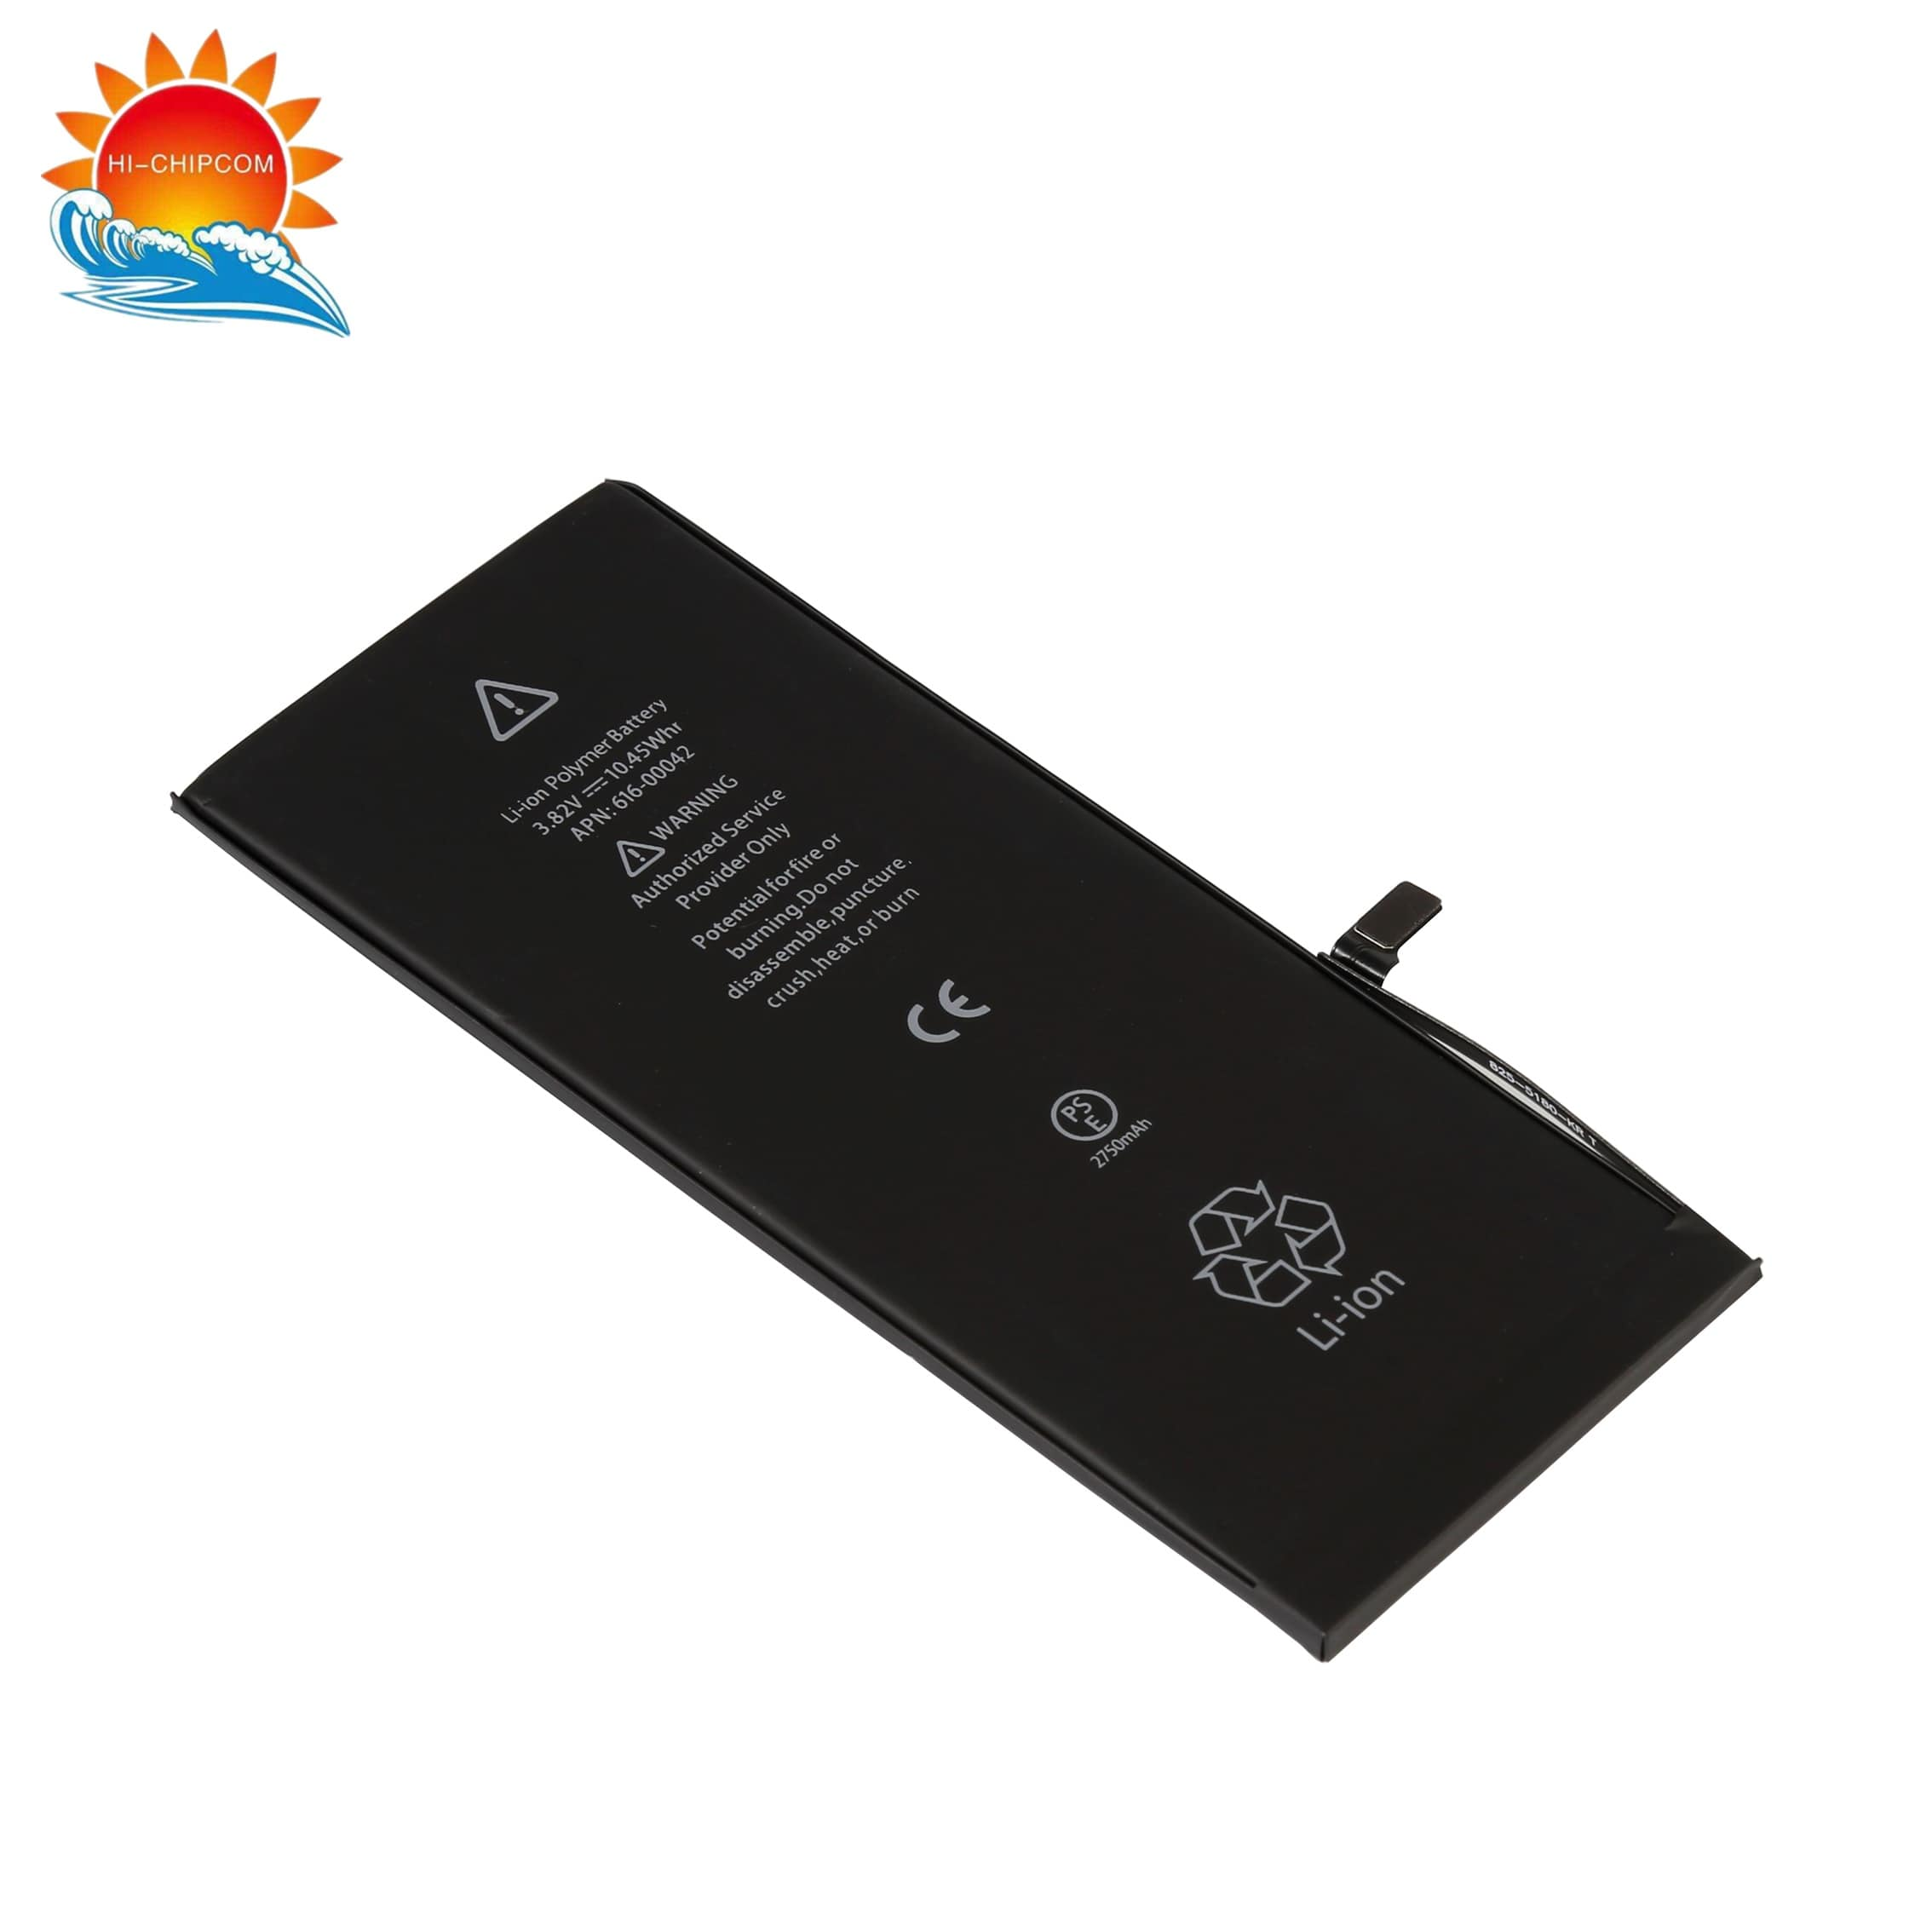 High Capacity Battery for iPhone 6S Plus